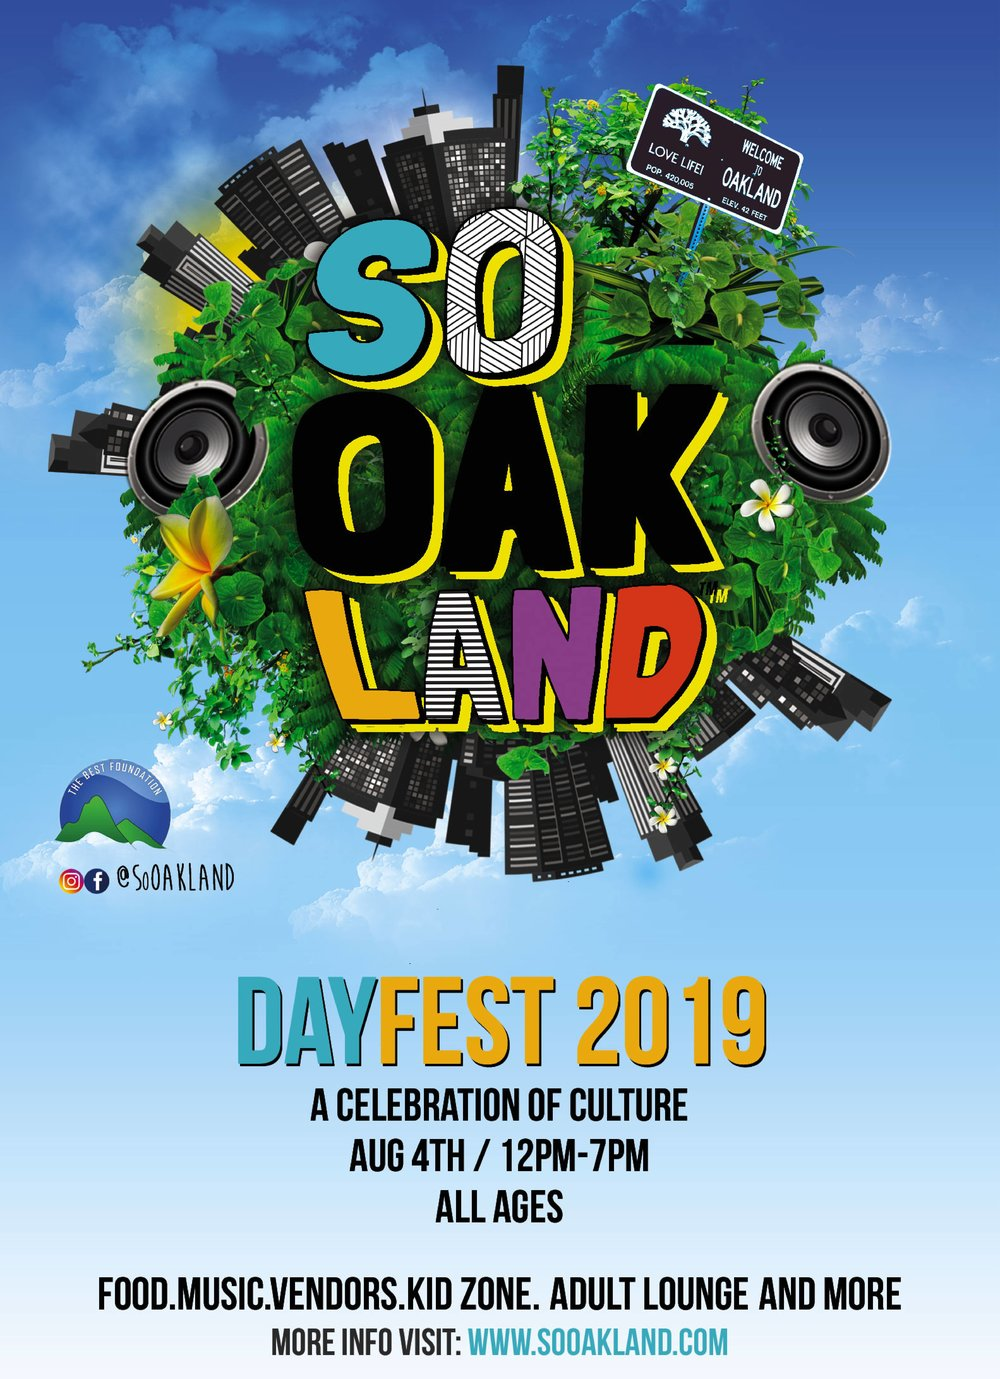 We HELLA love SOOakland Day! - Join us and the rest of the SoOakland crew this August for some community fun in the sun. We're honored to be selected for this grassroots event, eek! Tickets are on sale NOW, you dont want to miss it!!